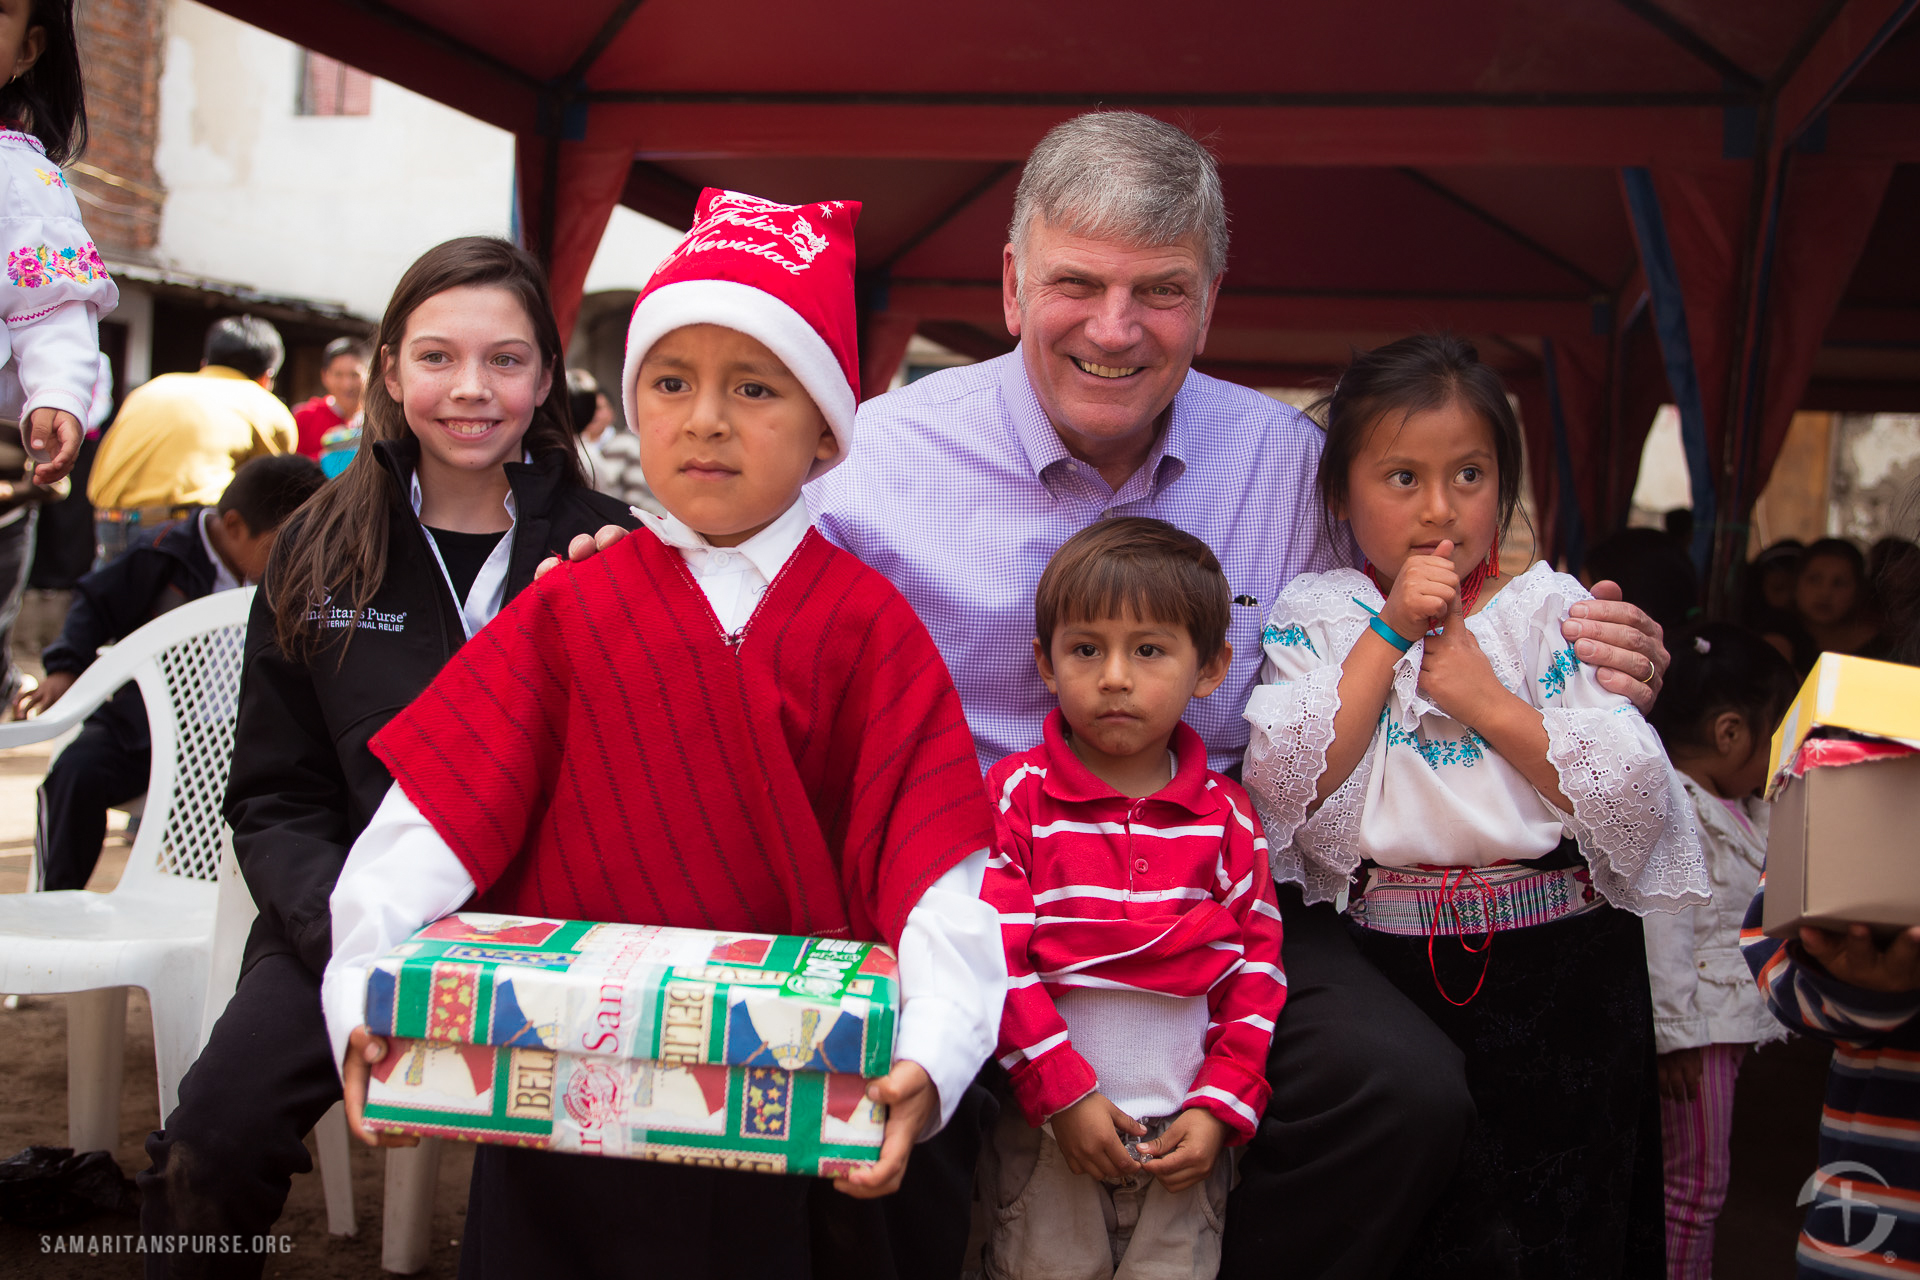 Franklin Graham's granddaughter C.J. (far left) also made the journey to Ecuador.